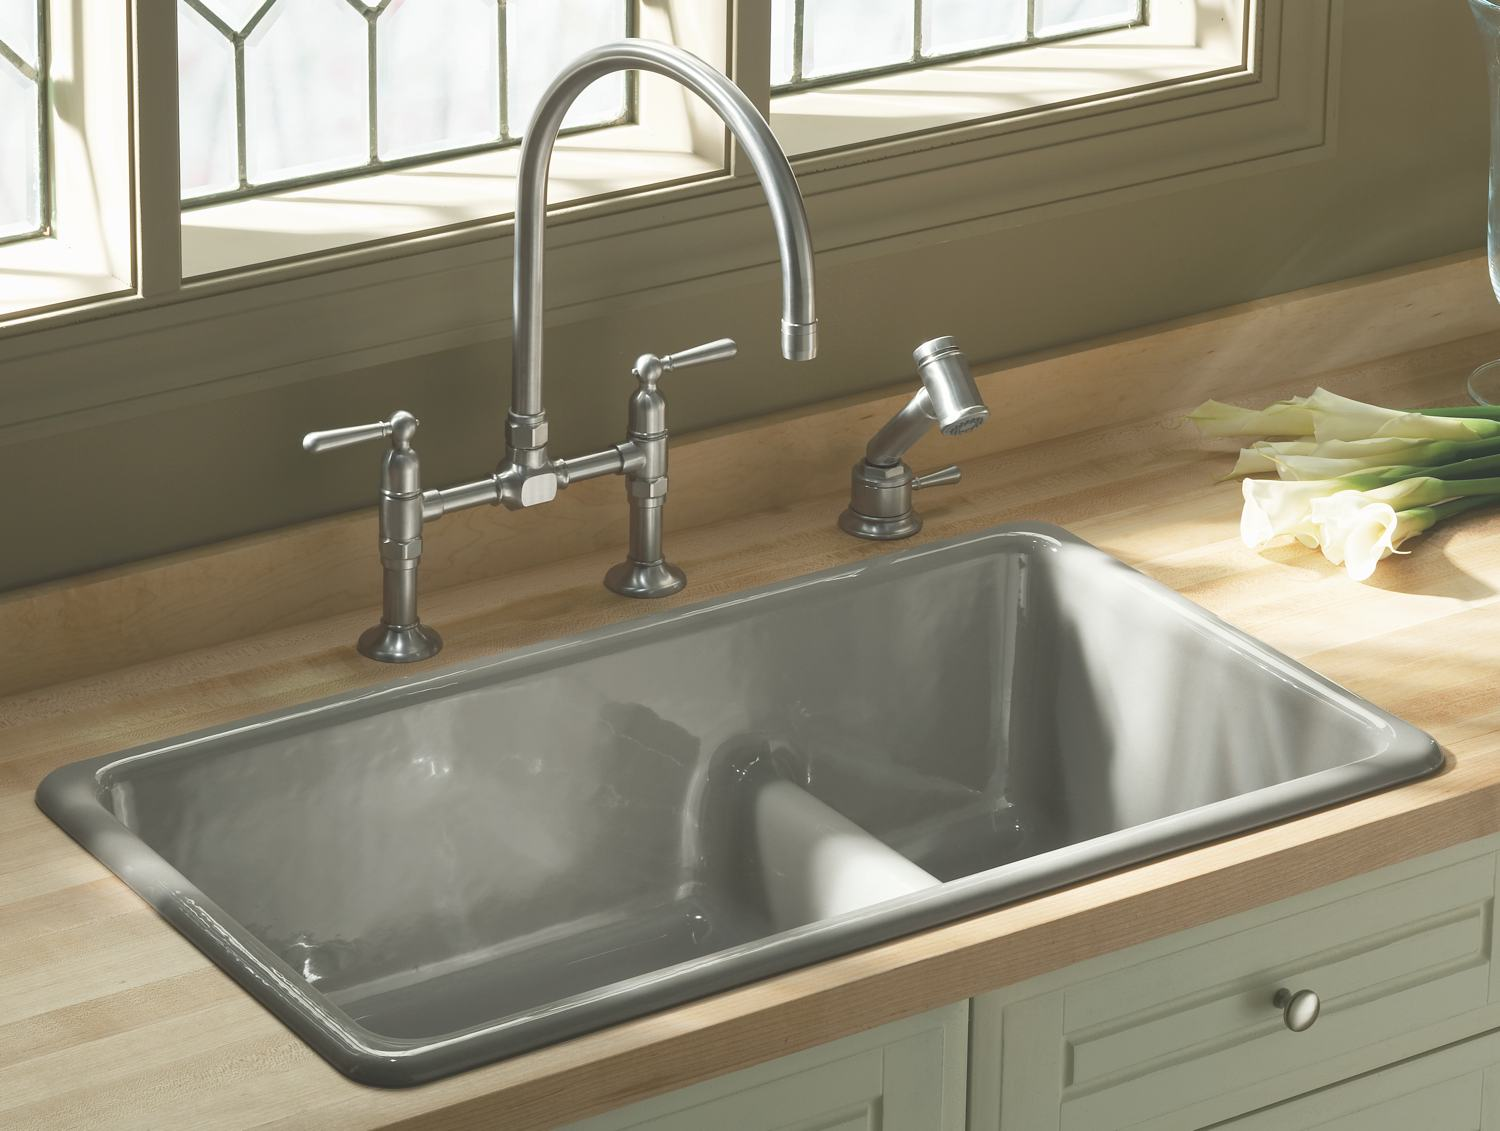 Kitchen Sinks Kohler K 6625 Iron Tones Smart Divide Self Rimming Or